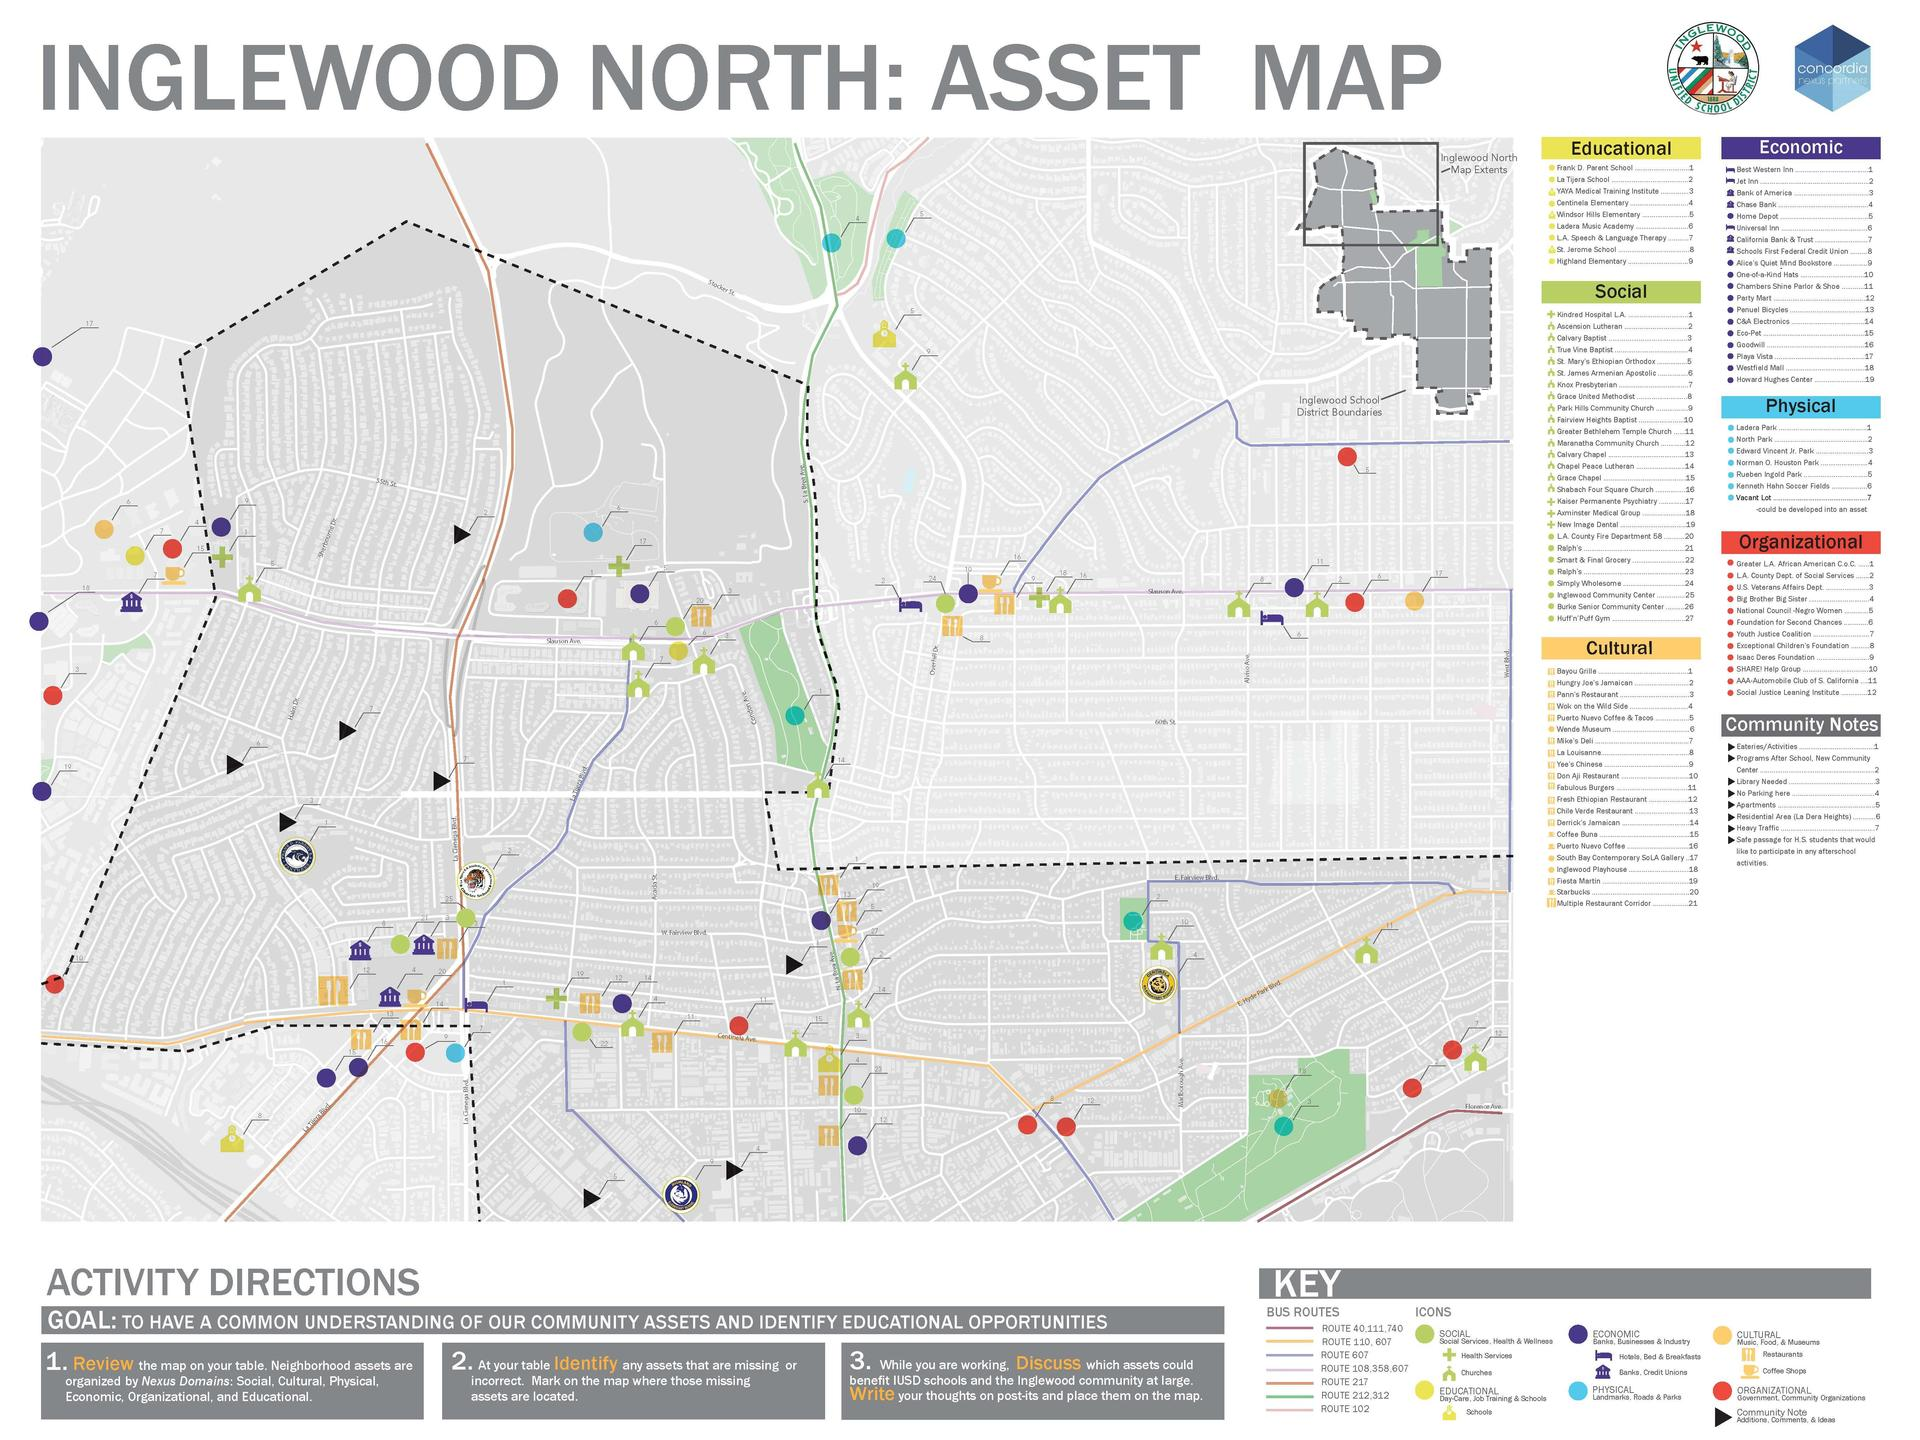 2018-2023 Strategic Plan – About Us – Inglewood Unified ... on south bay cities map, santa ana college map, downey map, pleasanton map, colorado map, norco map, east lake sammamish map, woodlake map, azusa map, whittier blvd map, north redondo beach map, elizabeth park map, santa monica bay map, angels flight map, fairfield map, skid row map, highland map, the forum map, glendora map, west covina map,